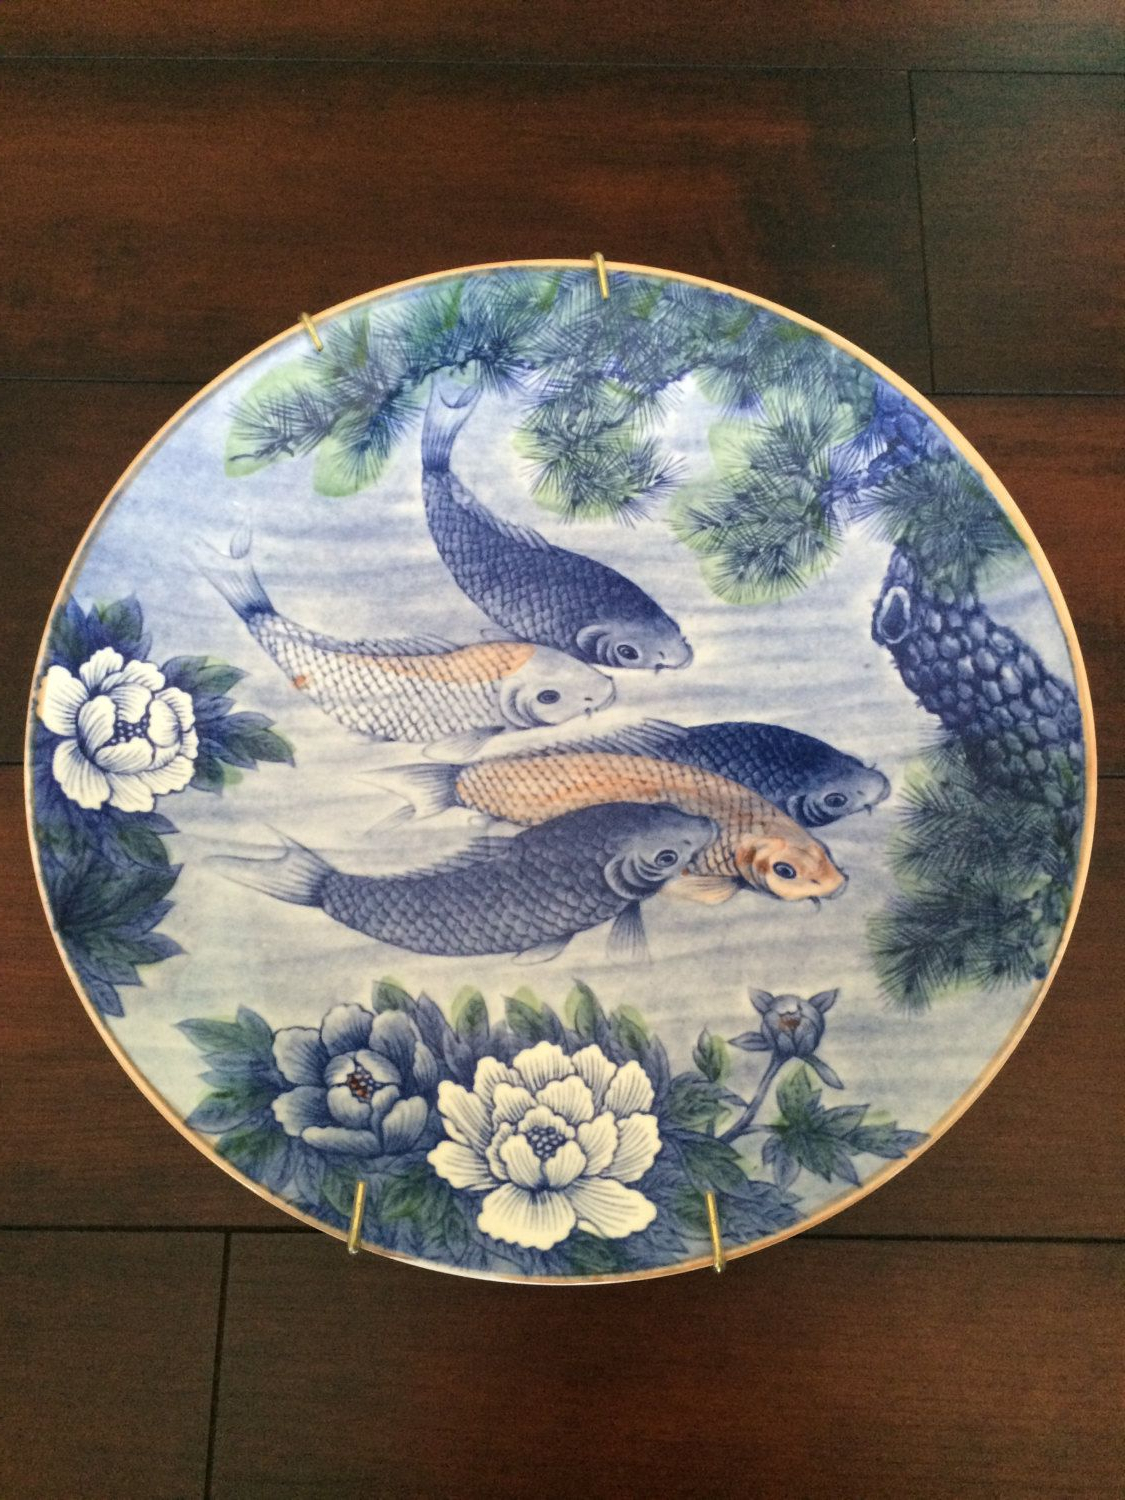 Most Popular Ceramic Blue Fish Plate Wall Decor Throughout Koi Dish Platter, Sun Ceramics, Large Platter Made In Japan, 1960's (View 4 of 20)